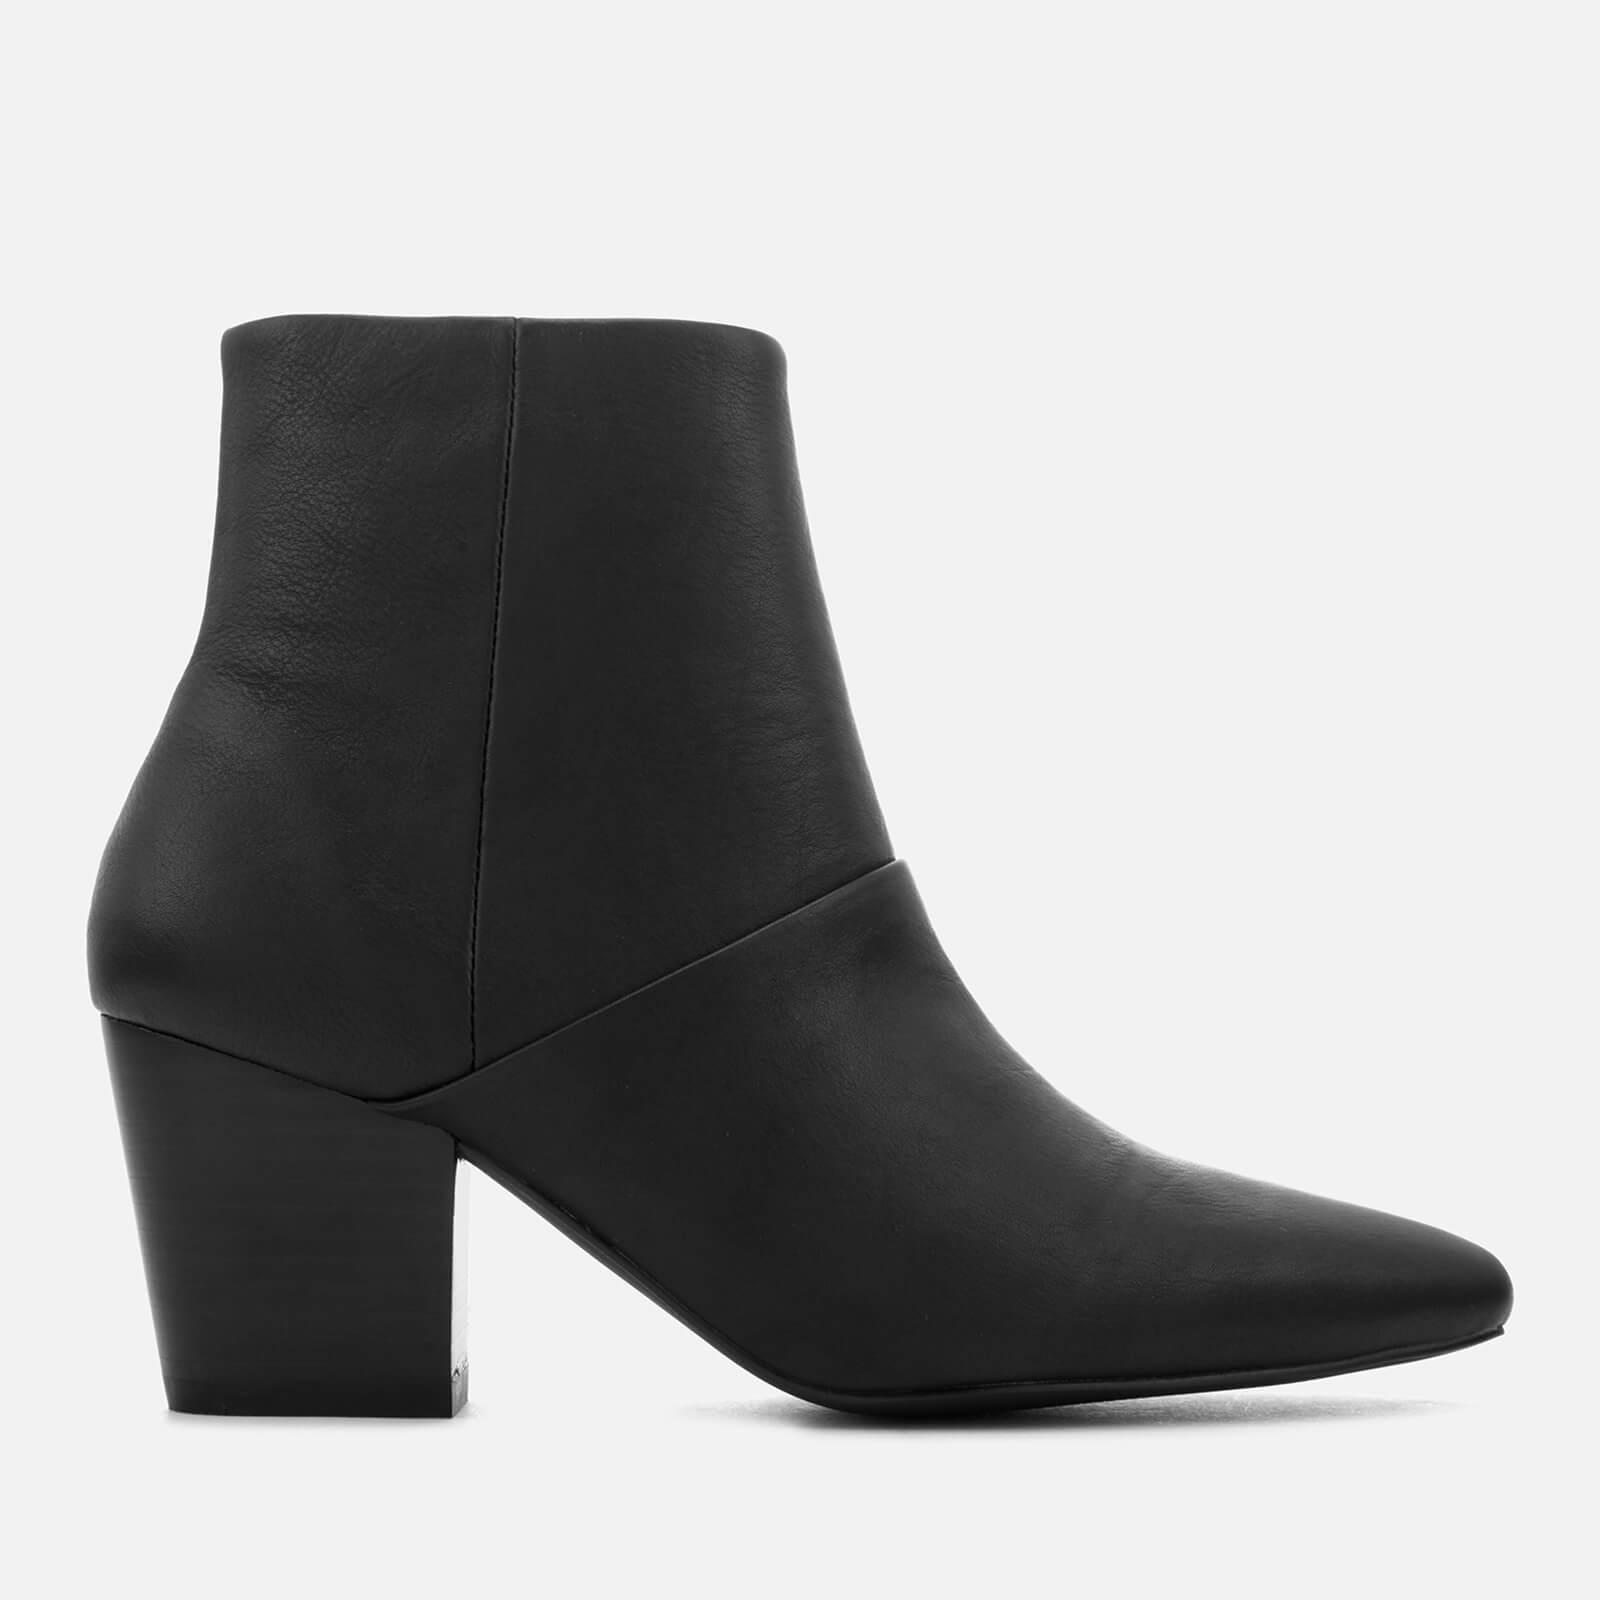 9f34f0946092 Sol Sana Chrissy Leather Heeled Ankle Boots in Black - Lyst